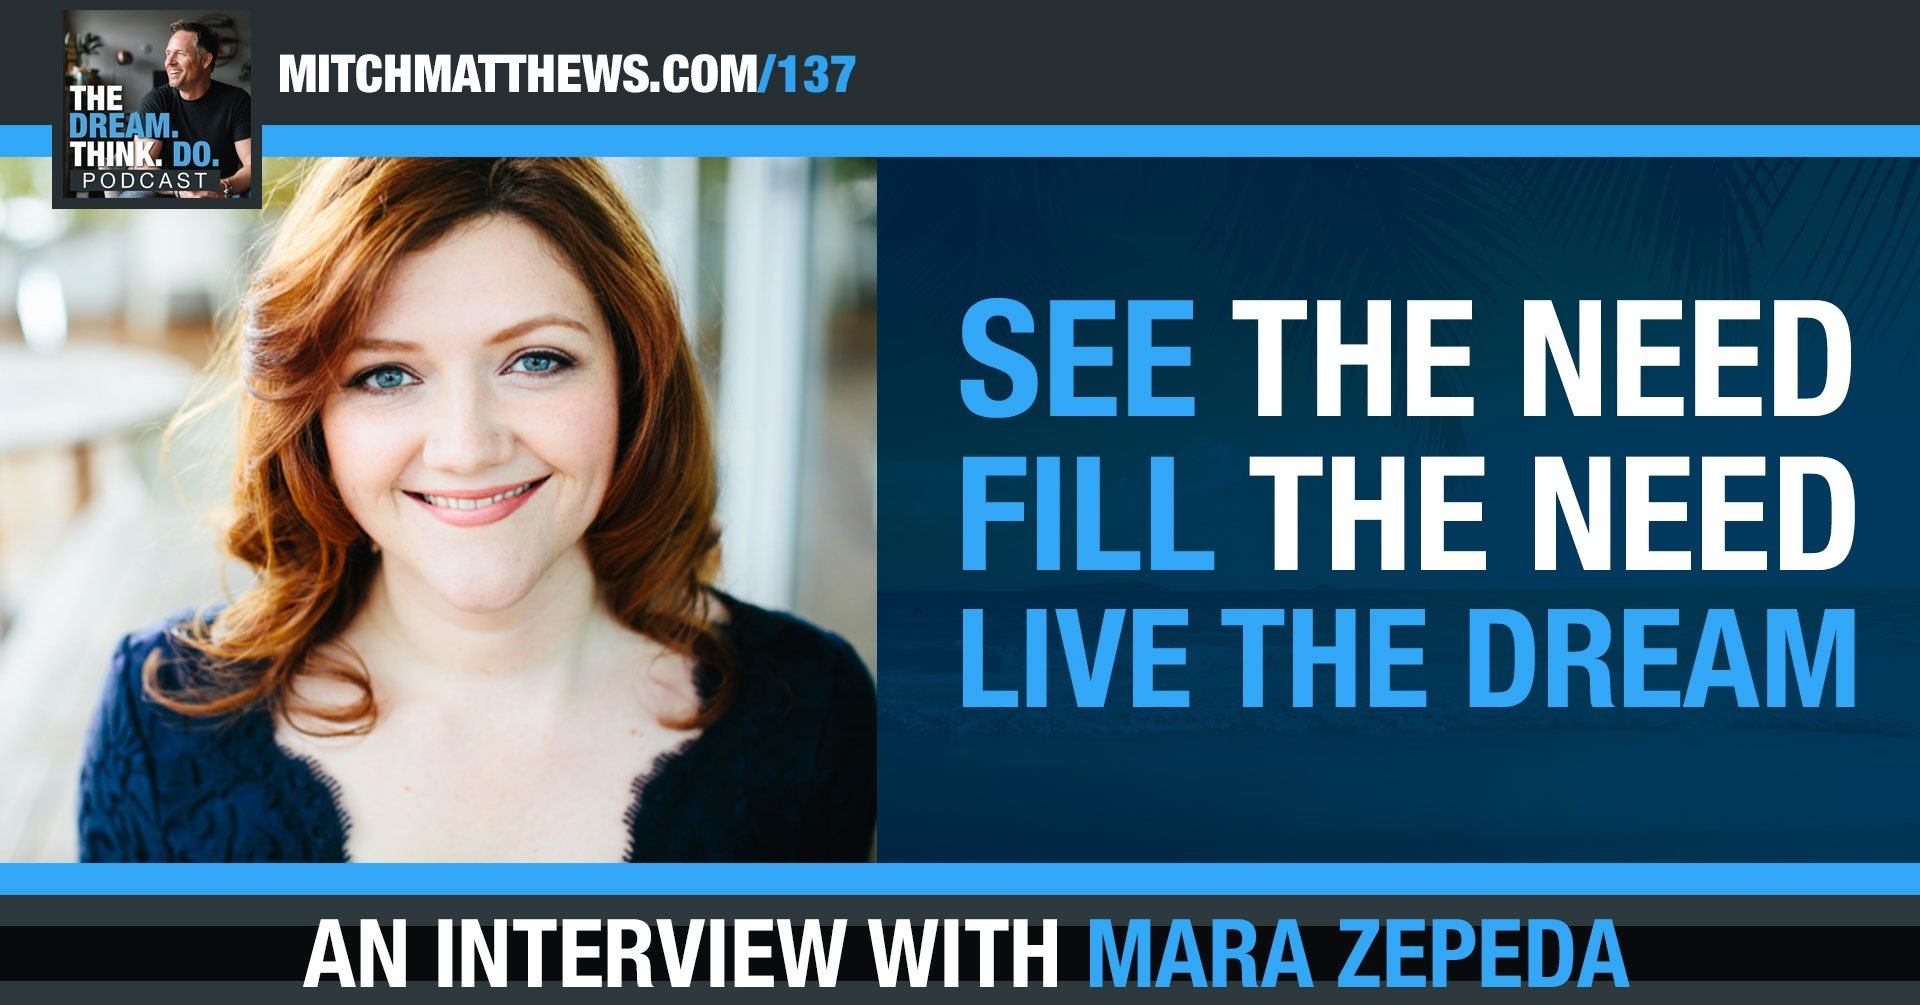 Mara Zepeda - See the need. Fill the need. Live the dream.